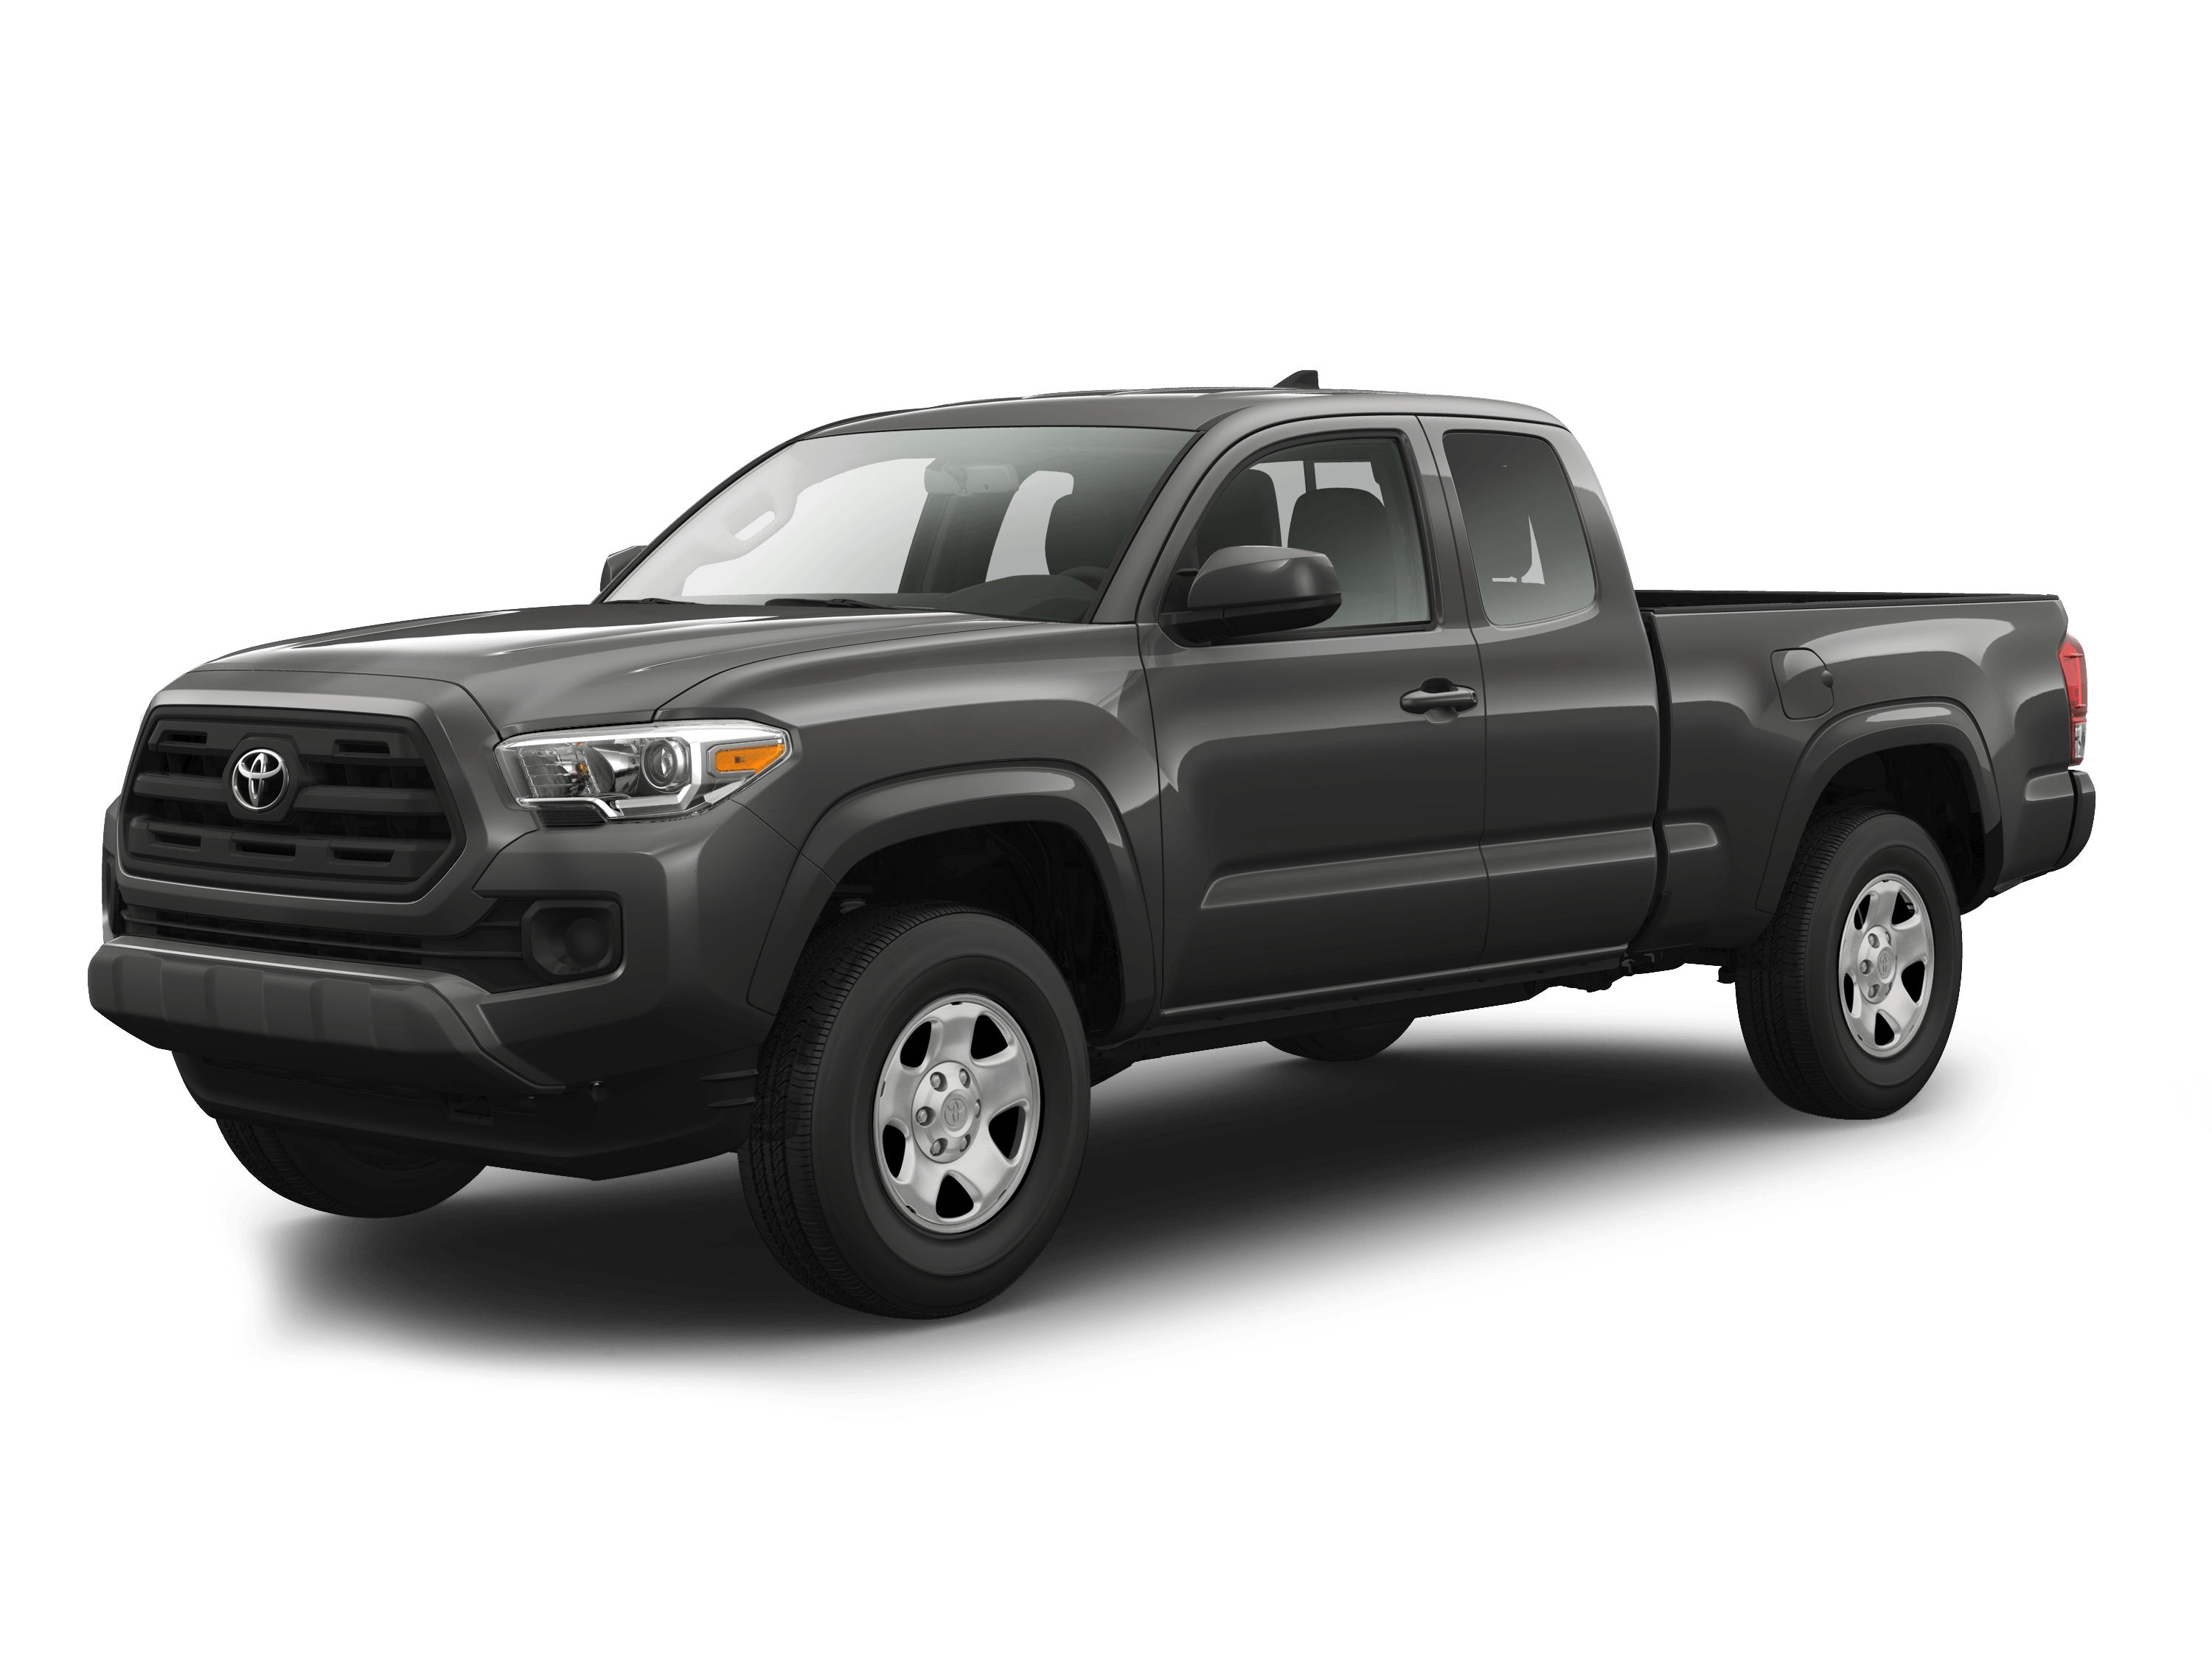 2019 Tacoma 4x2 Access Cab Standard Magnetic Grey Metallic Kingston Toyota Ontario